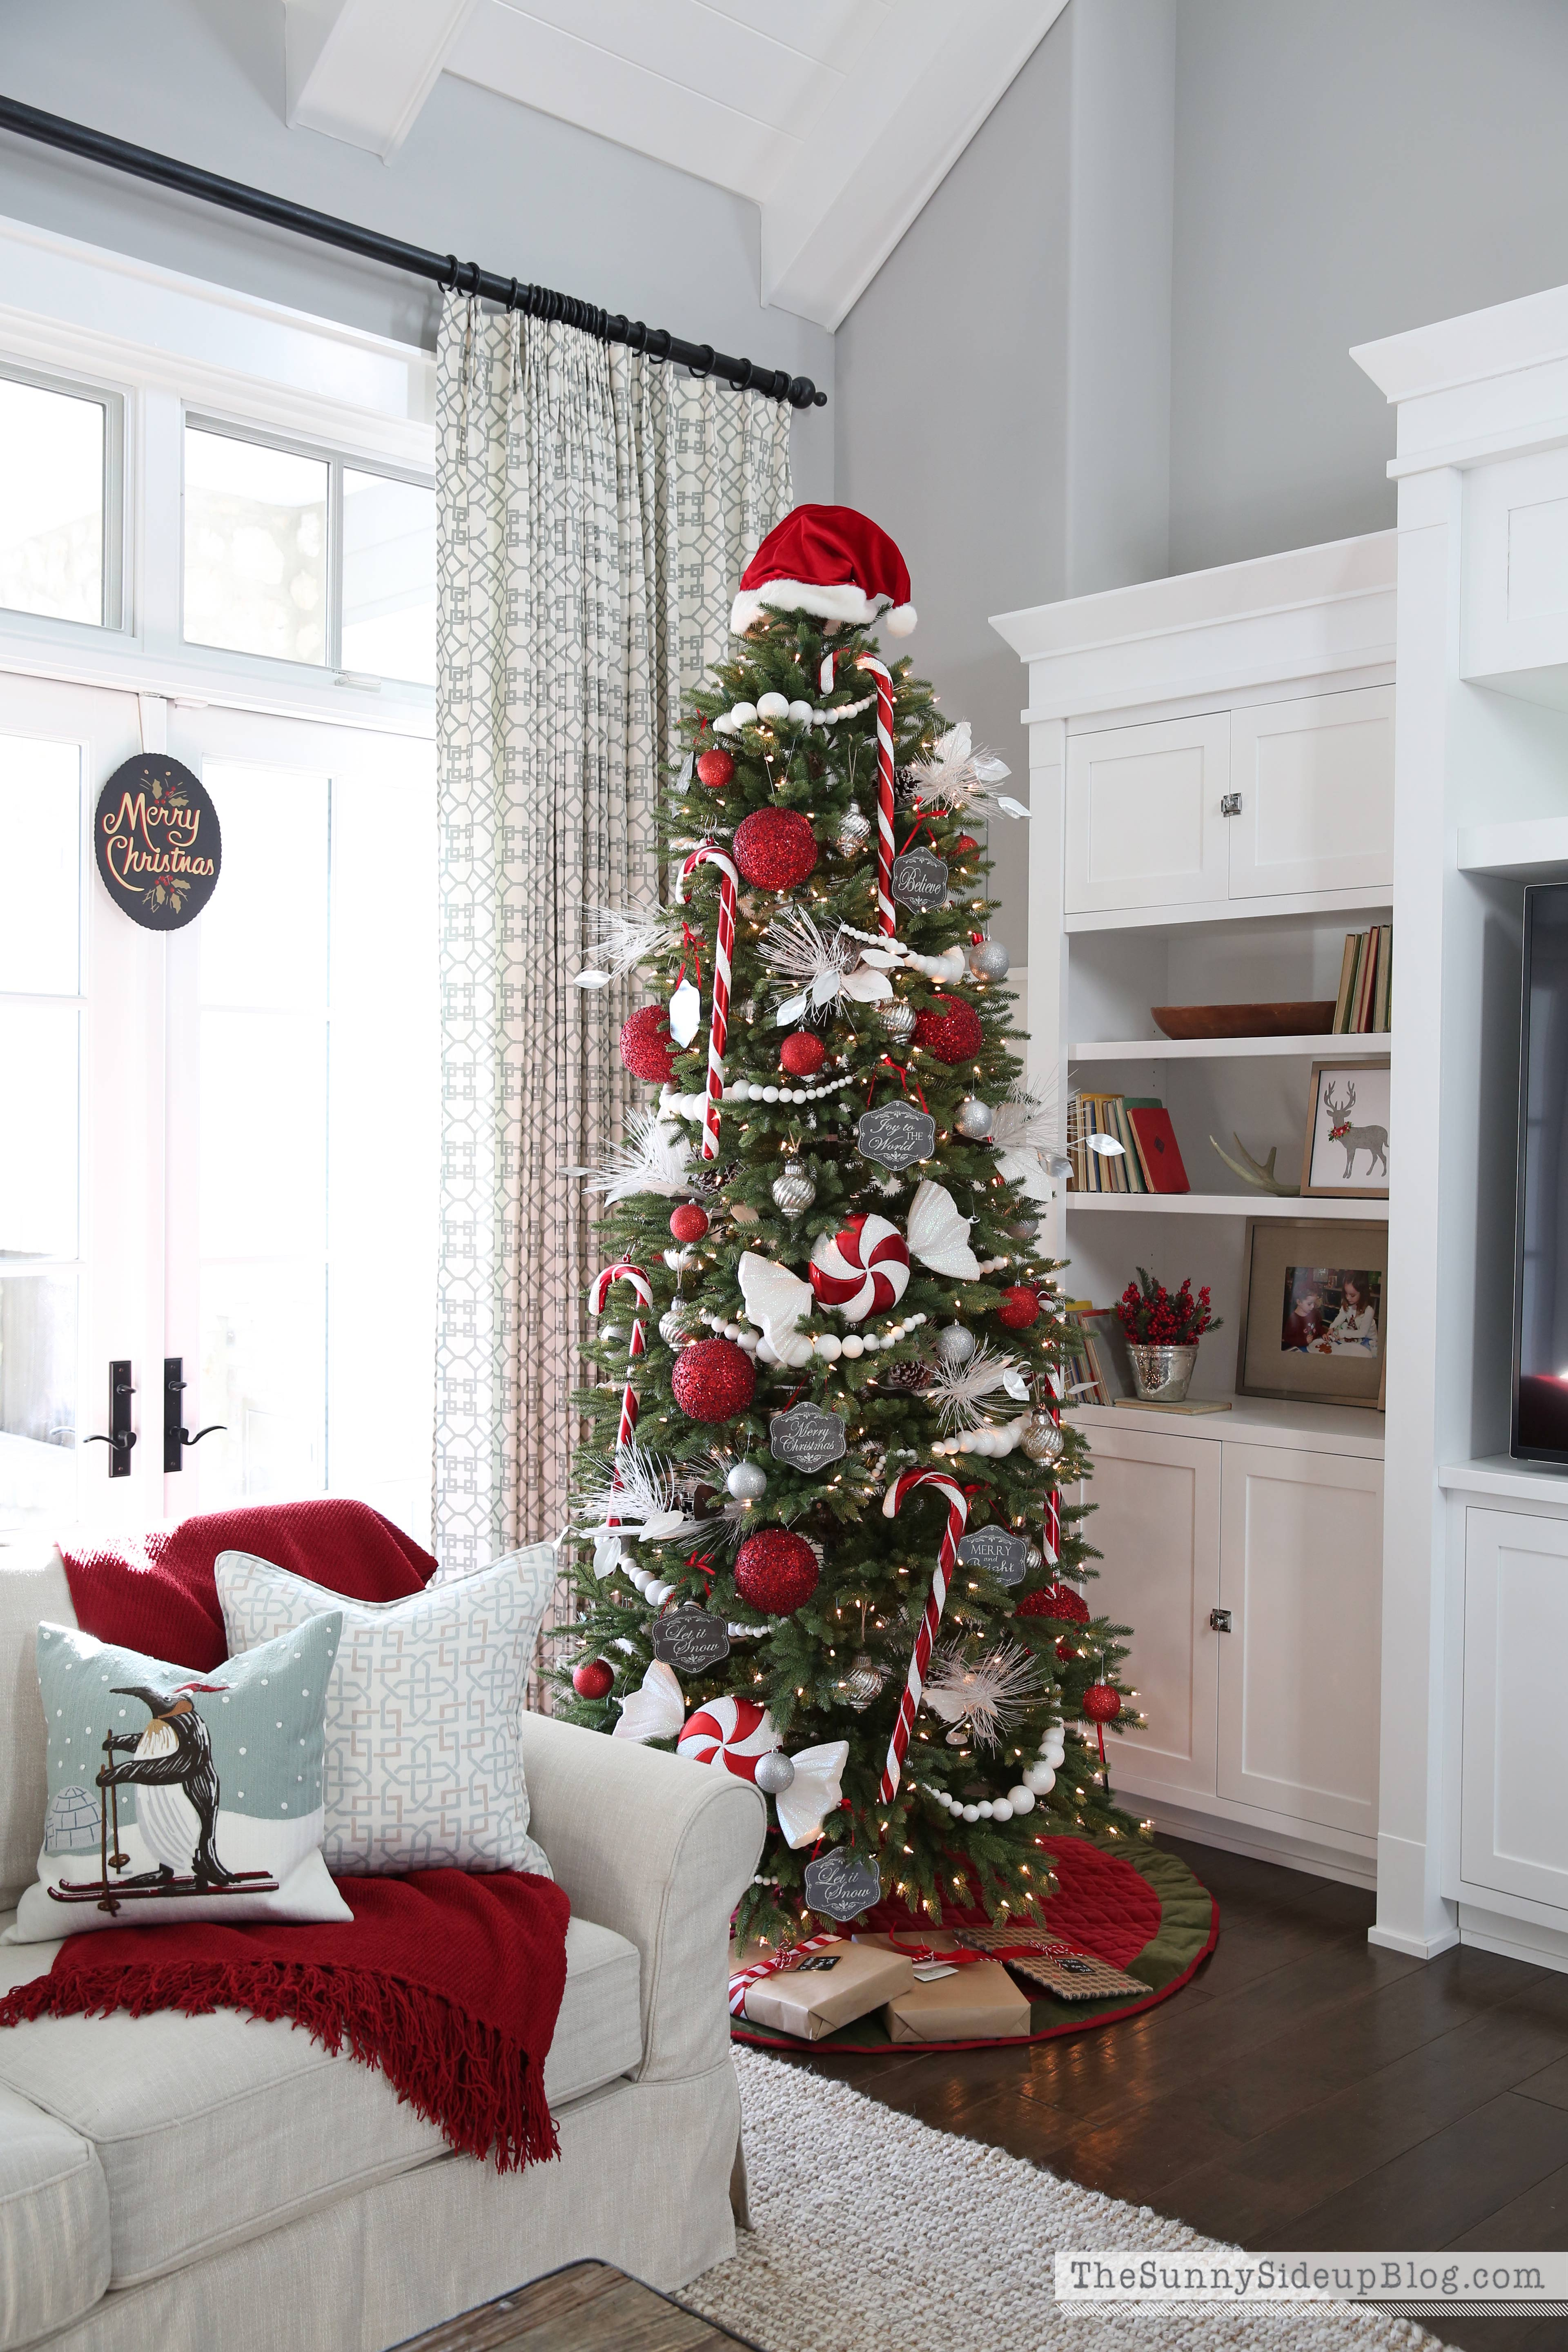 Formal Living Room Ideas Magnolia Lane Christmas Tour The Sunny Side Up Blog